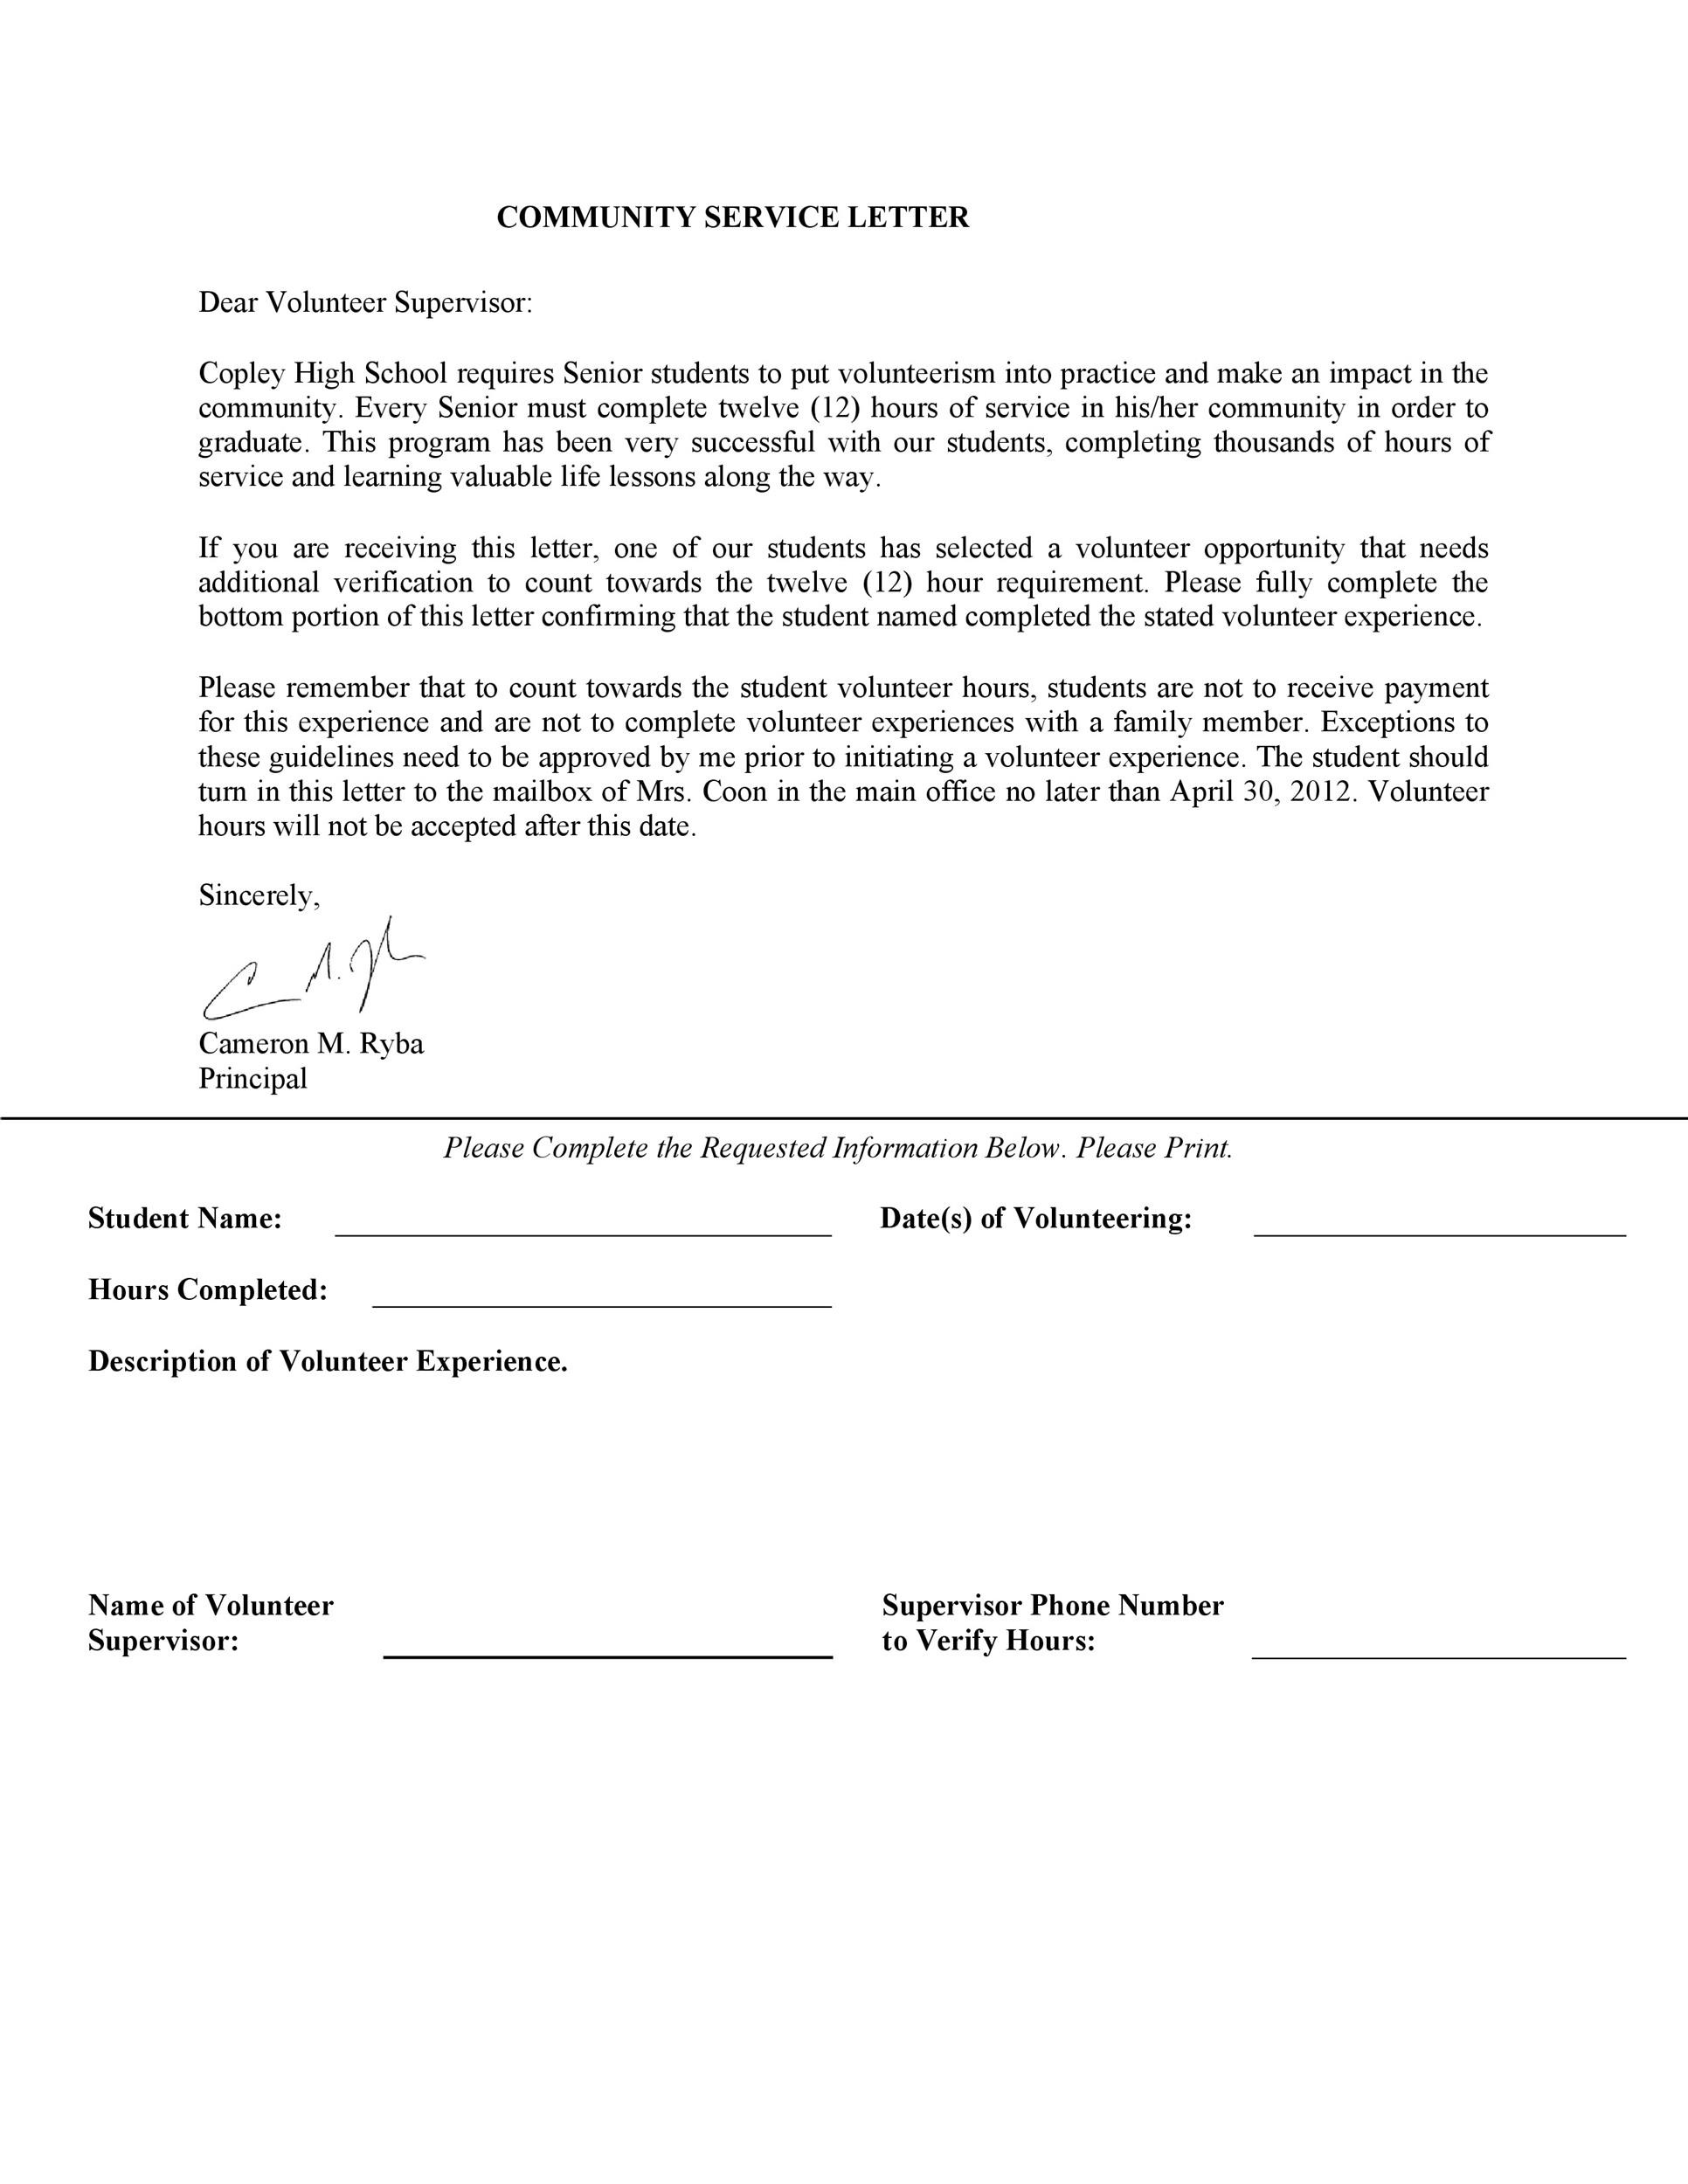 community service letter for student Community Service Letter - 40  Templates [Completion, Verification]